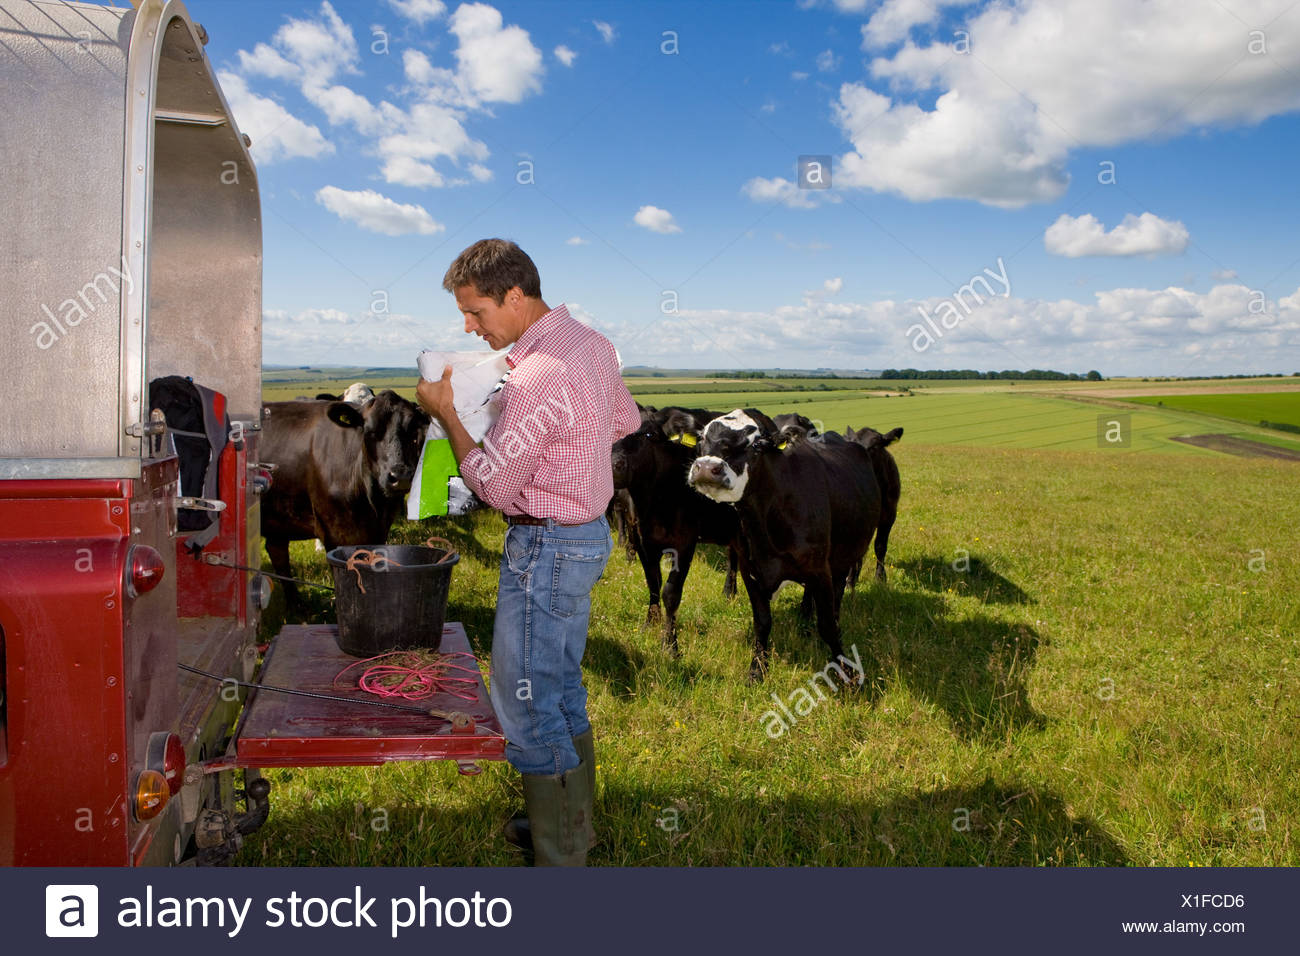 Farmer preparing feed for cattle on truck bed in sunny rural field - Stock Image